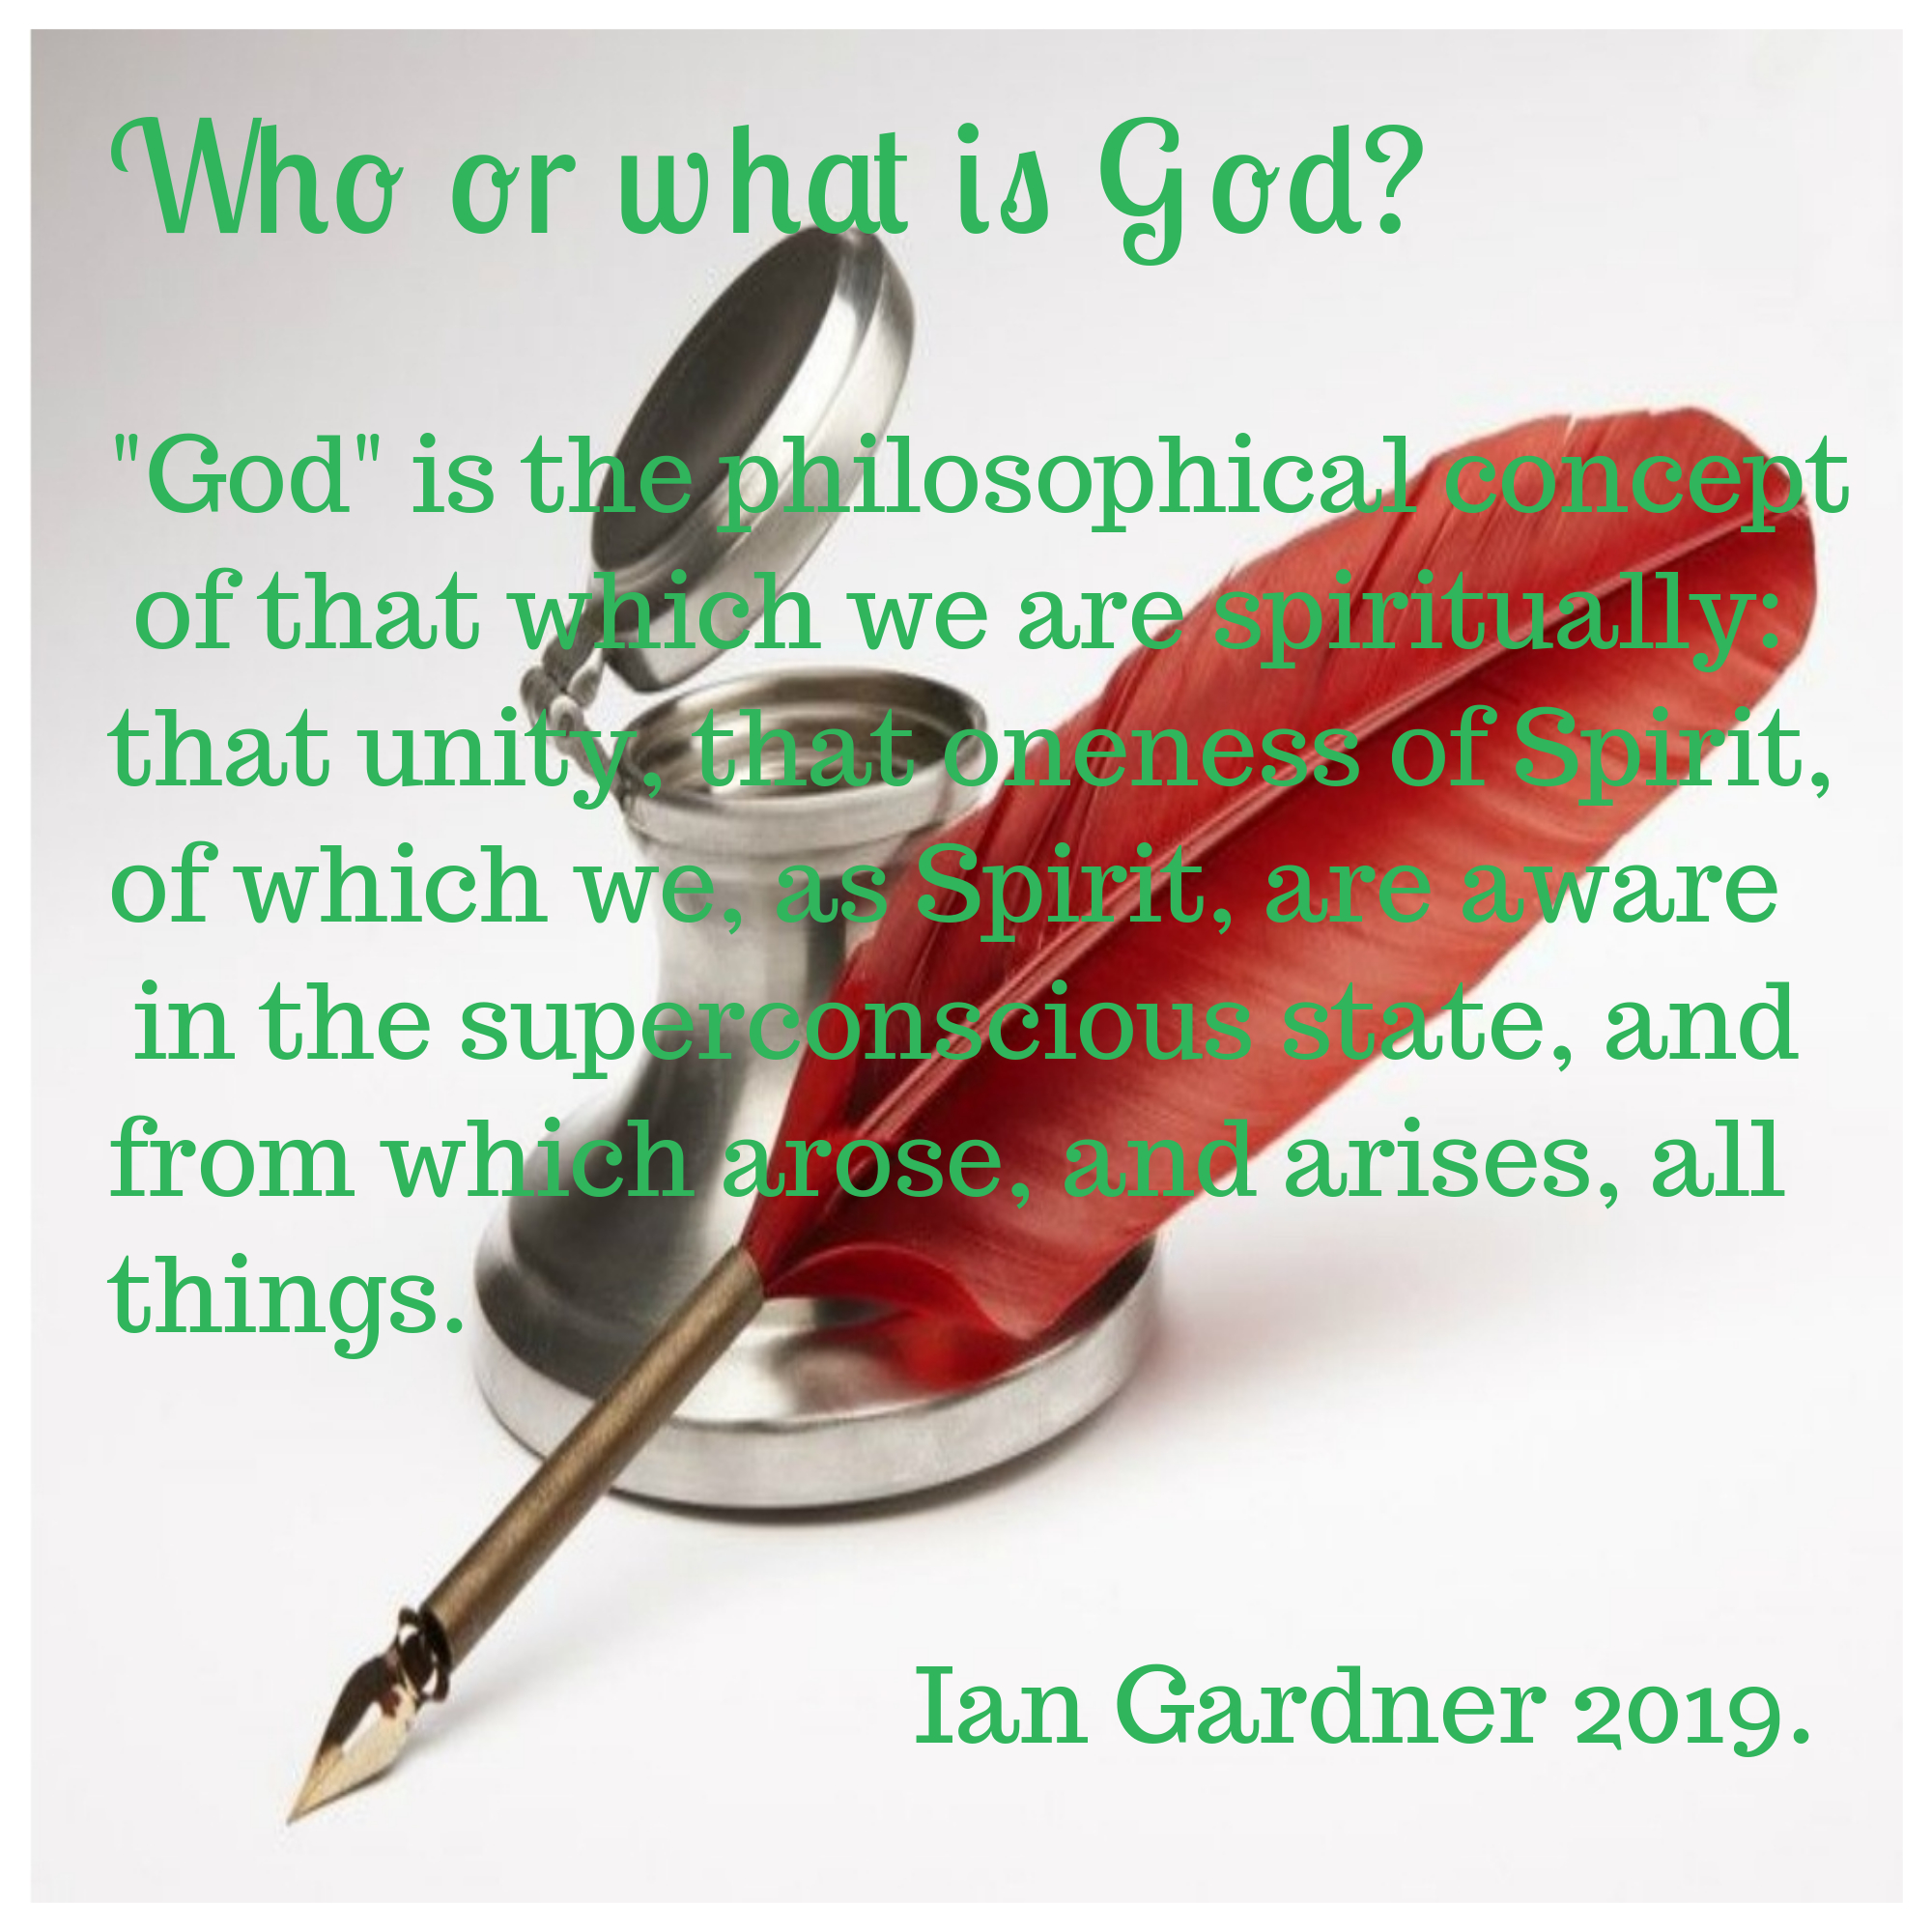 Who or what is God?